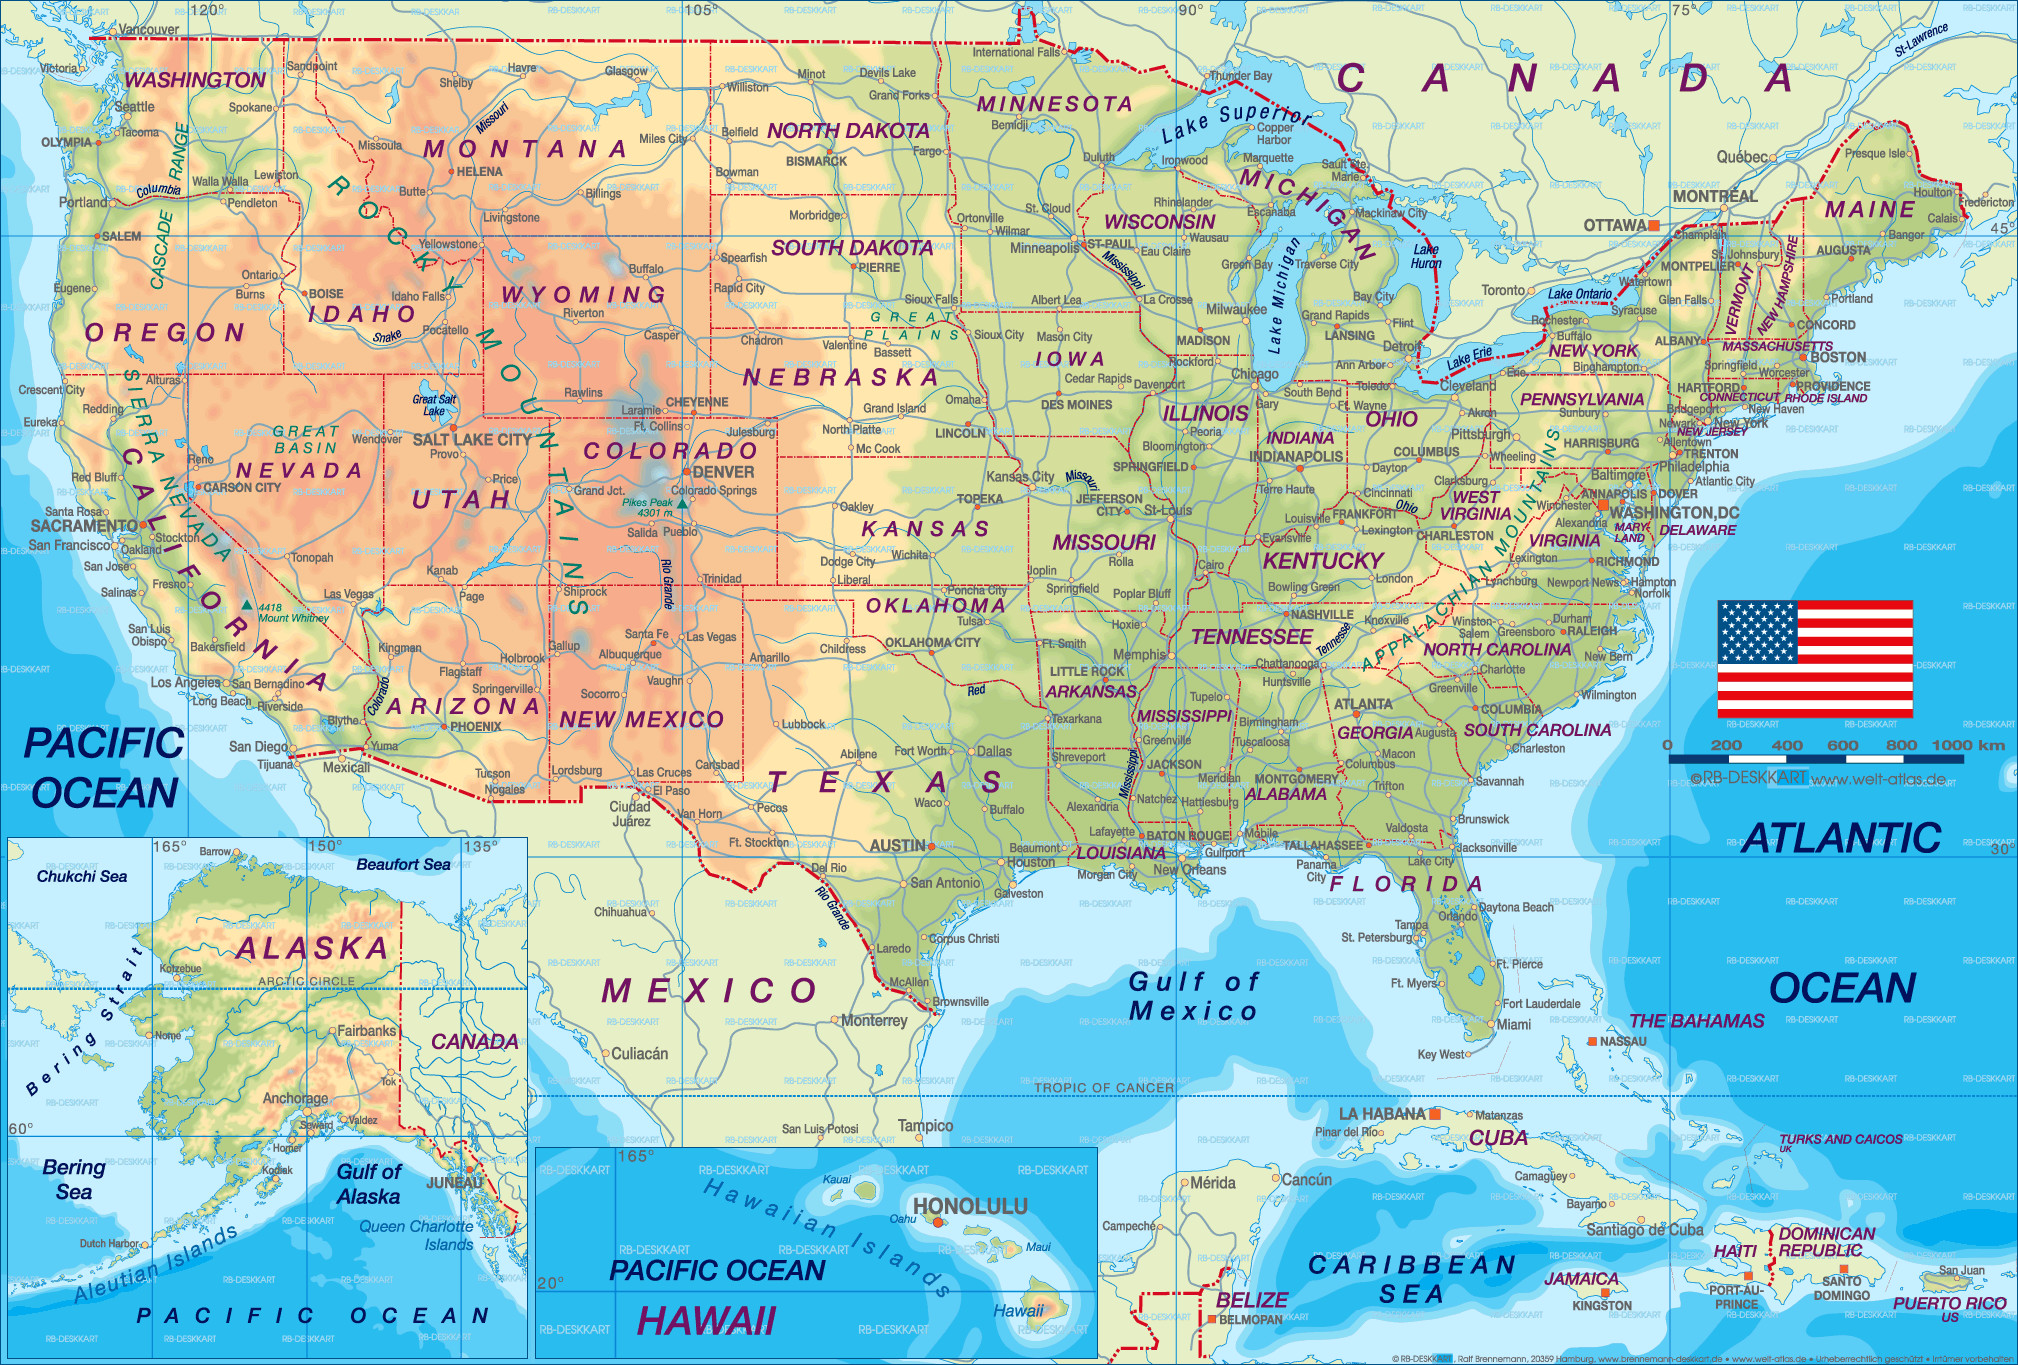 United States Map Wallpaper (52+ images) on usa map with states, map of us cell phone radiation, please name 52 states, united states 52 states, name all 52 states, accurate of usa states, 52 american states, list 52 states, was there ever 52 states, time zone for 52 states,